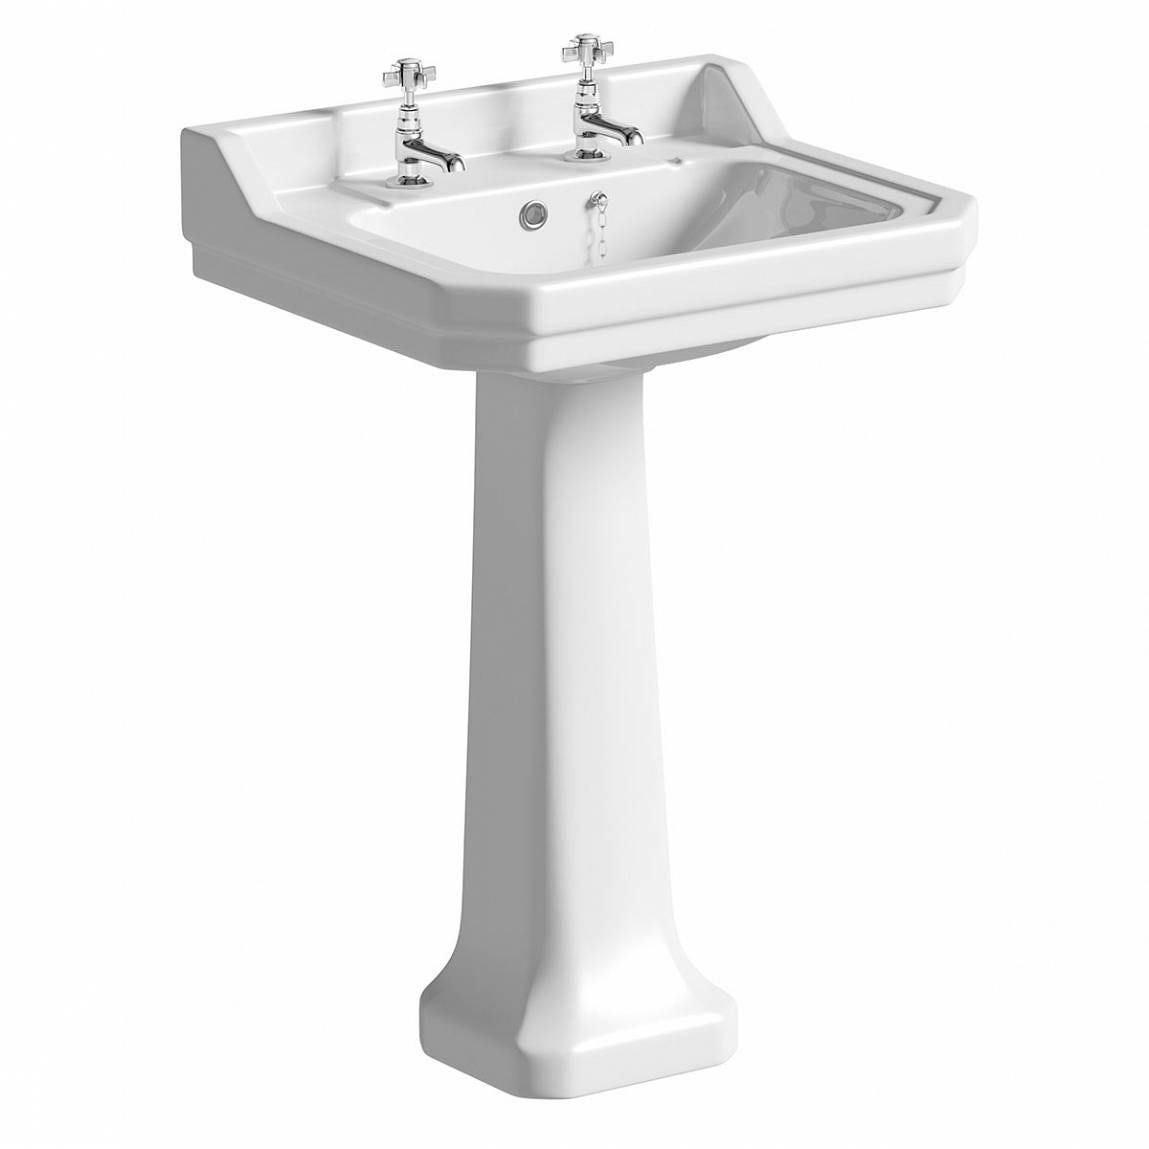 The Bath Co. Camberley 2 tap hole full pedestal basin 610mm